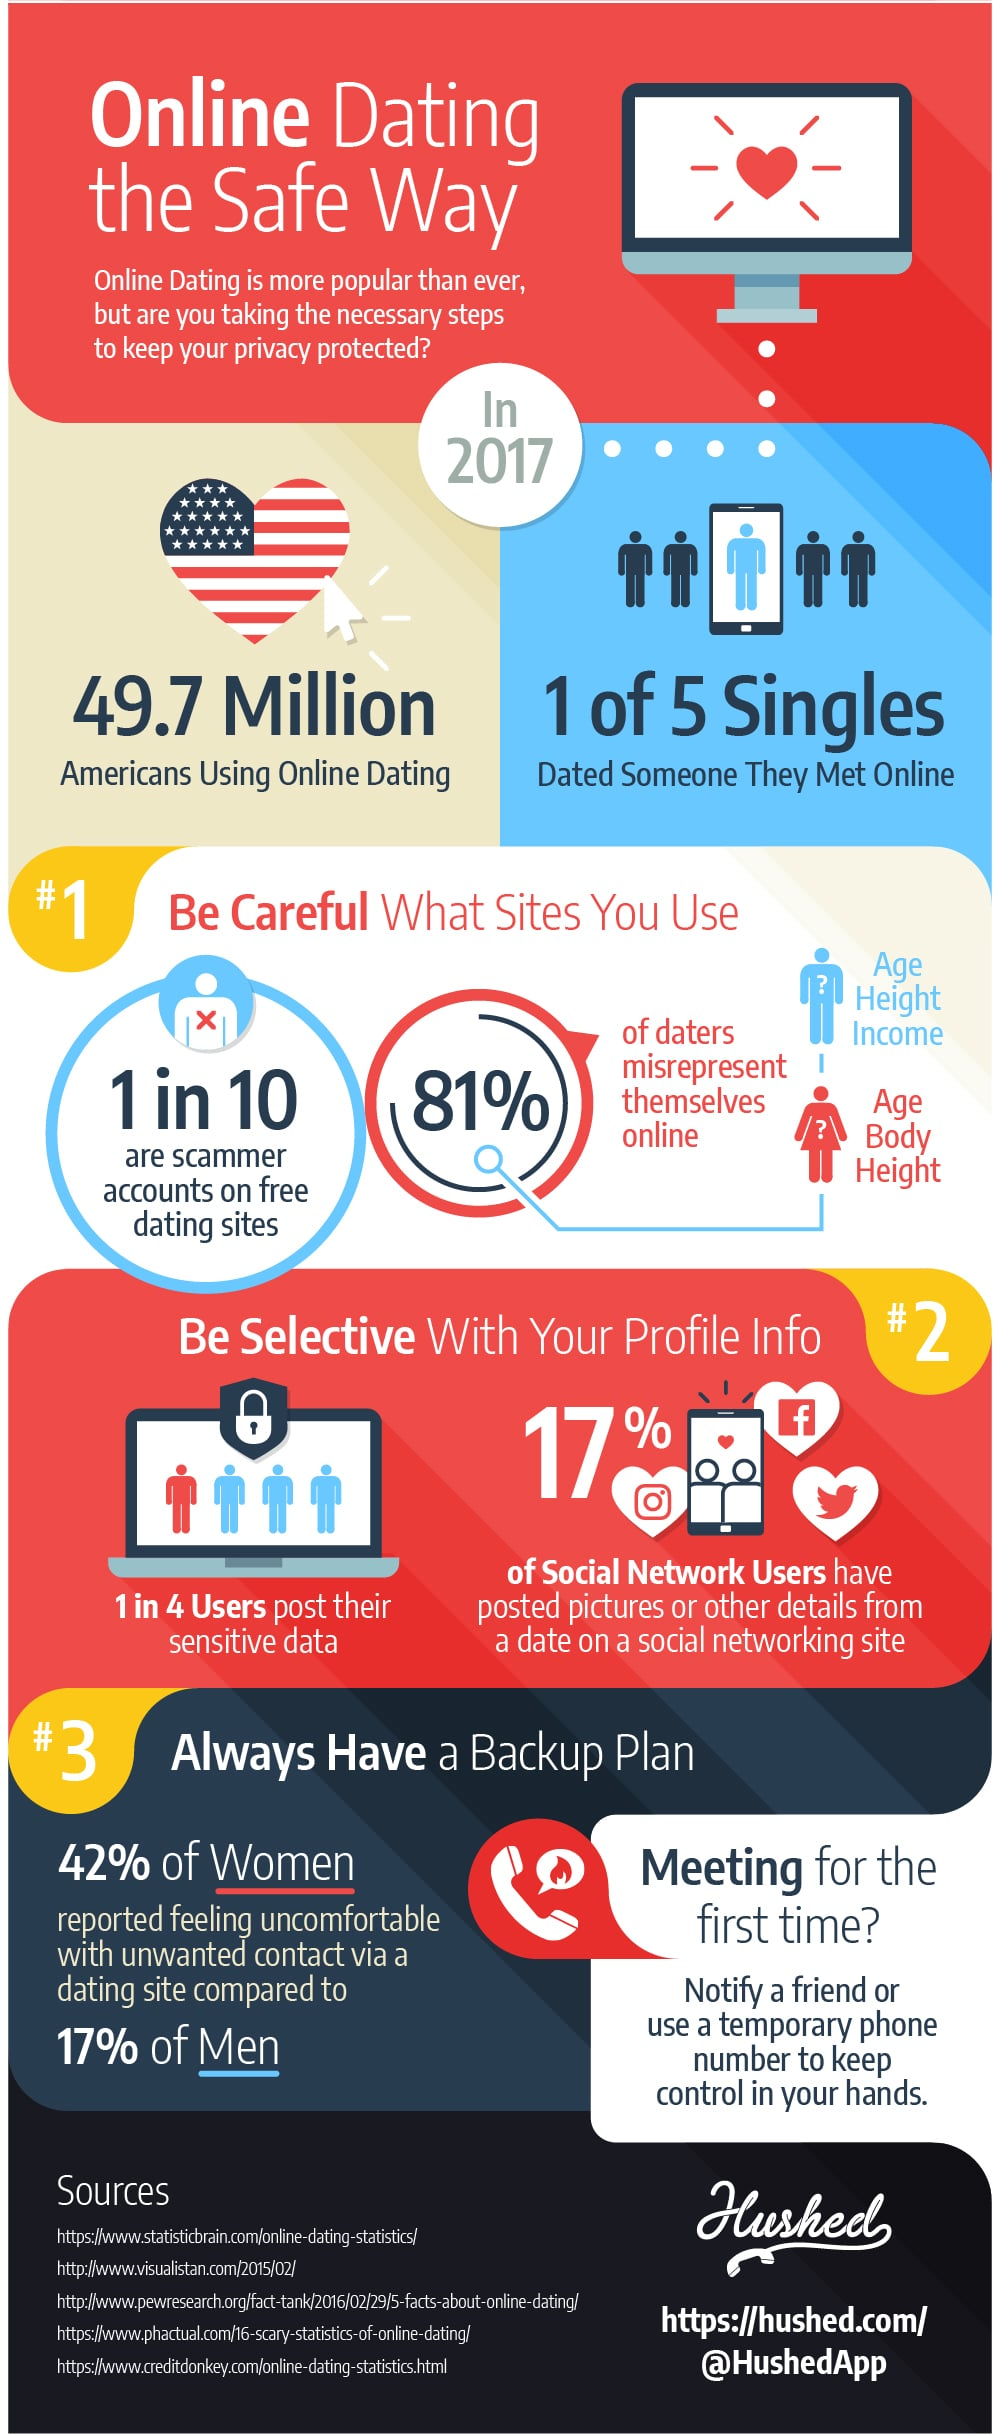 Online Dating and Safe Way